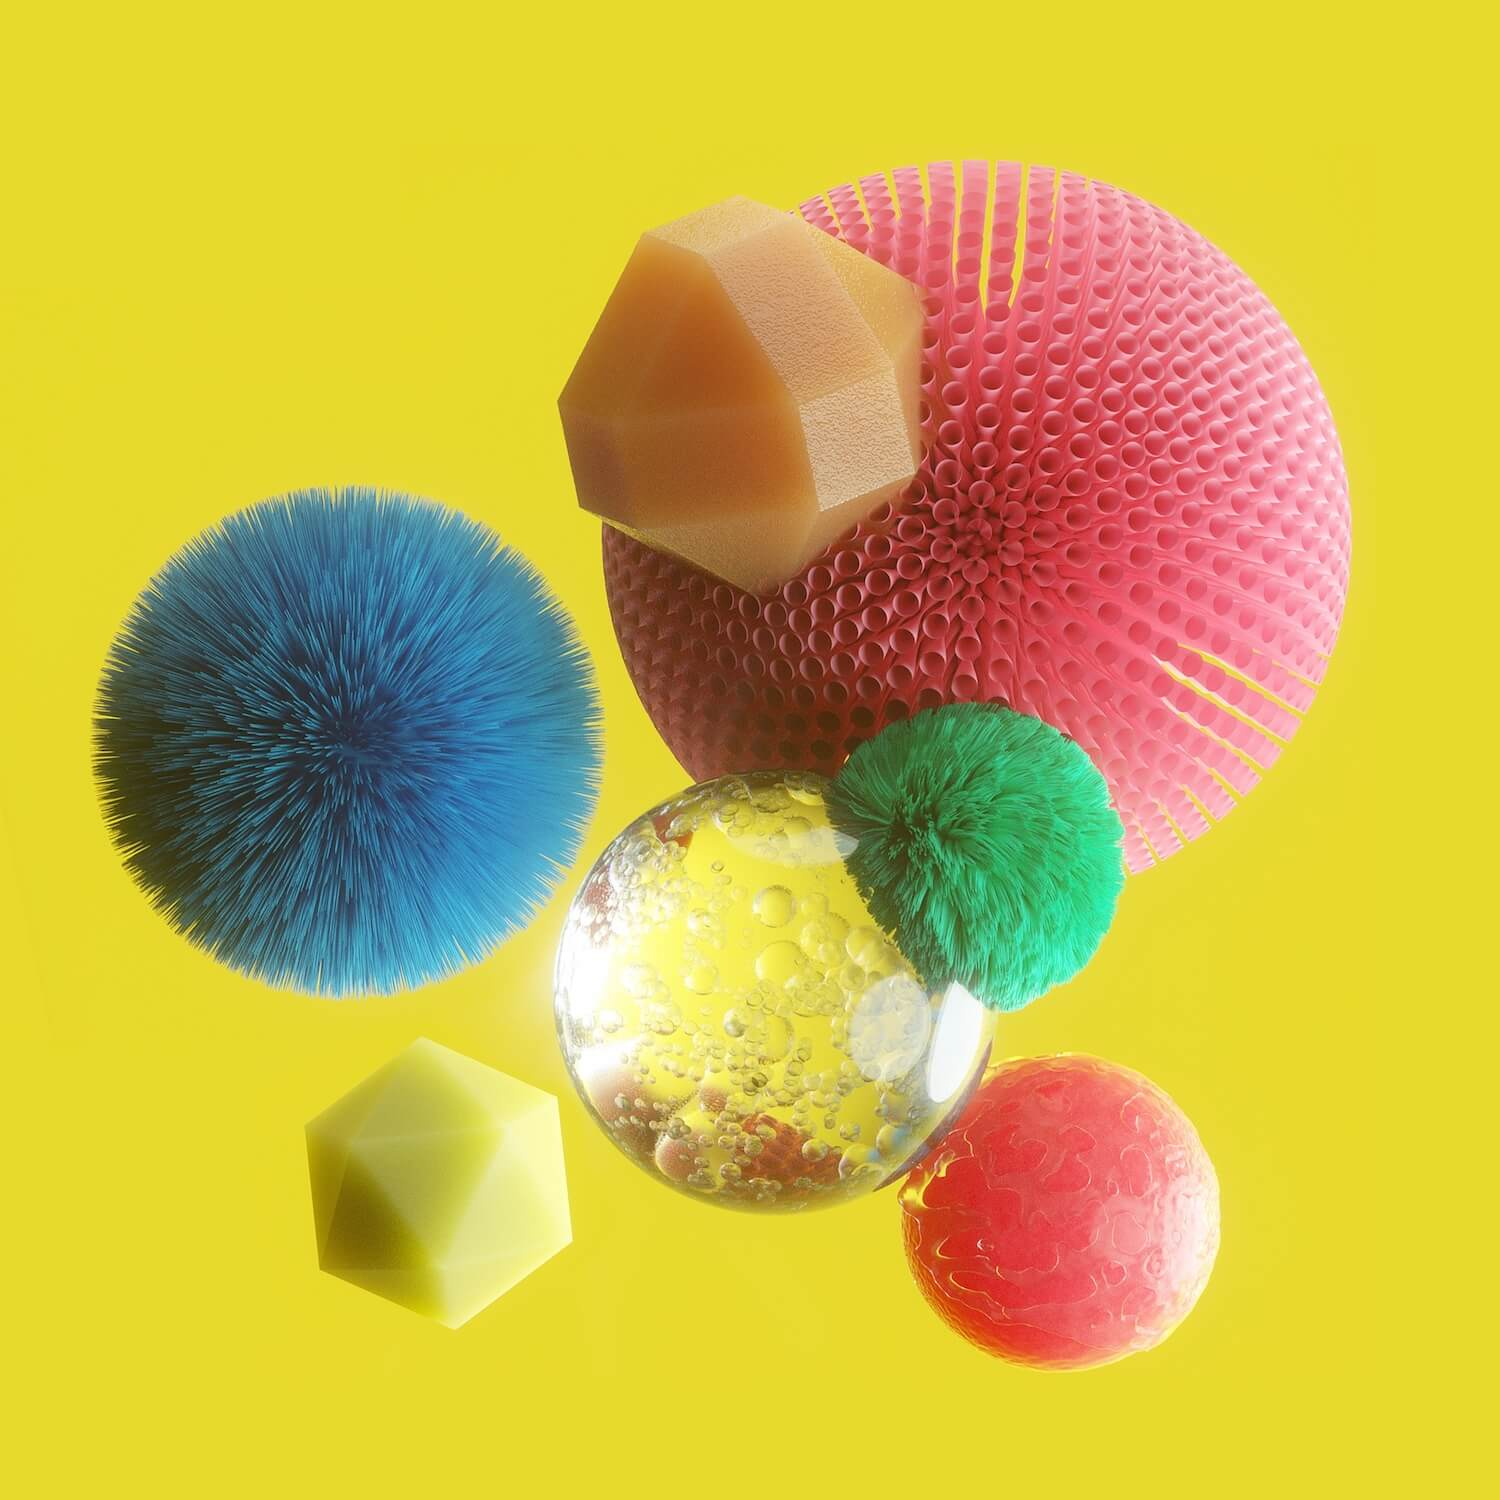 different textured balls floating on a yellow background